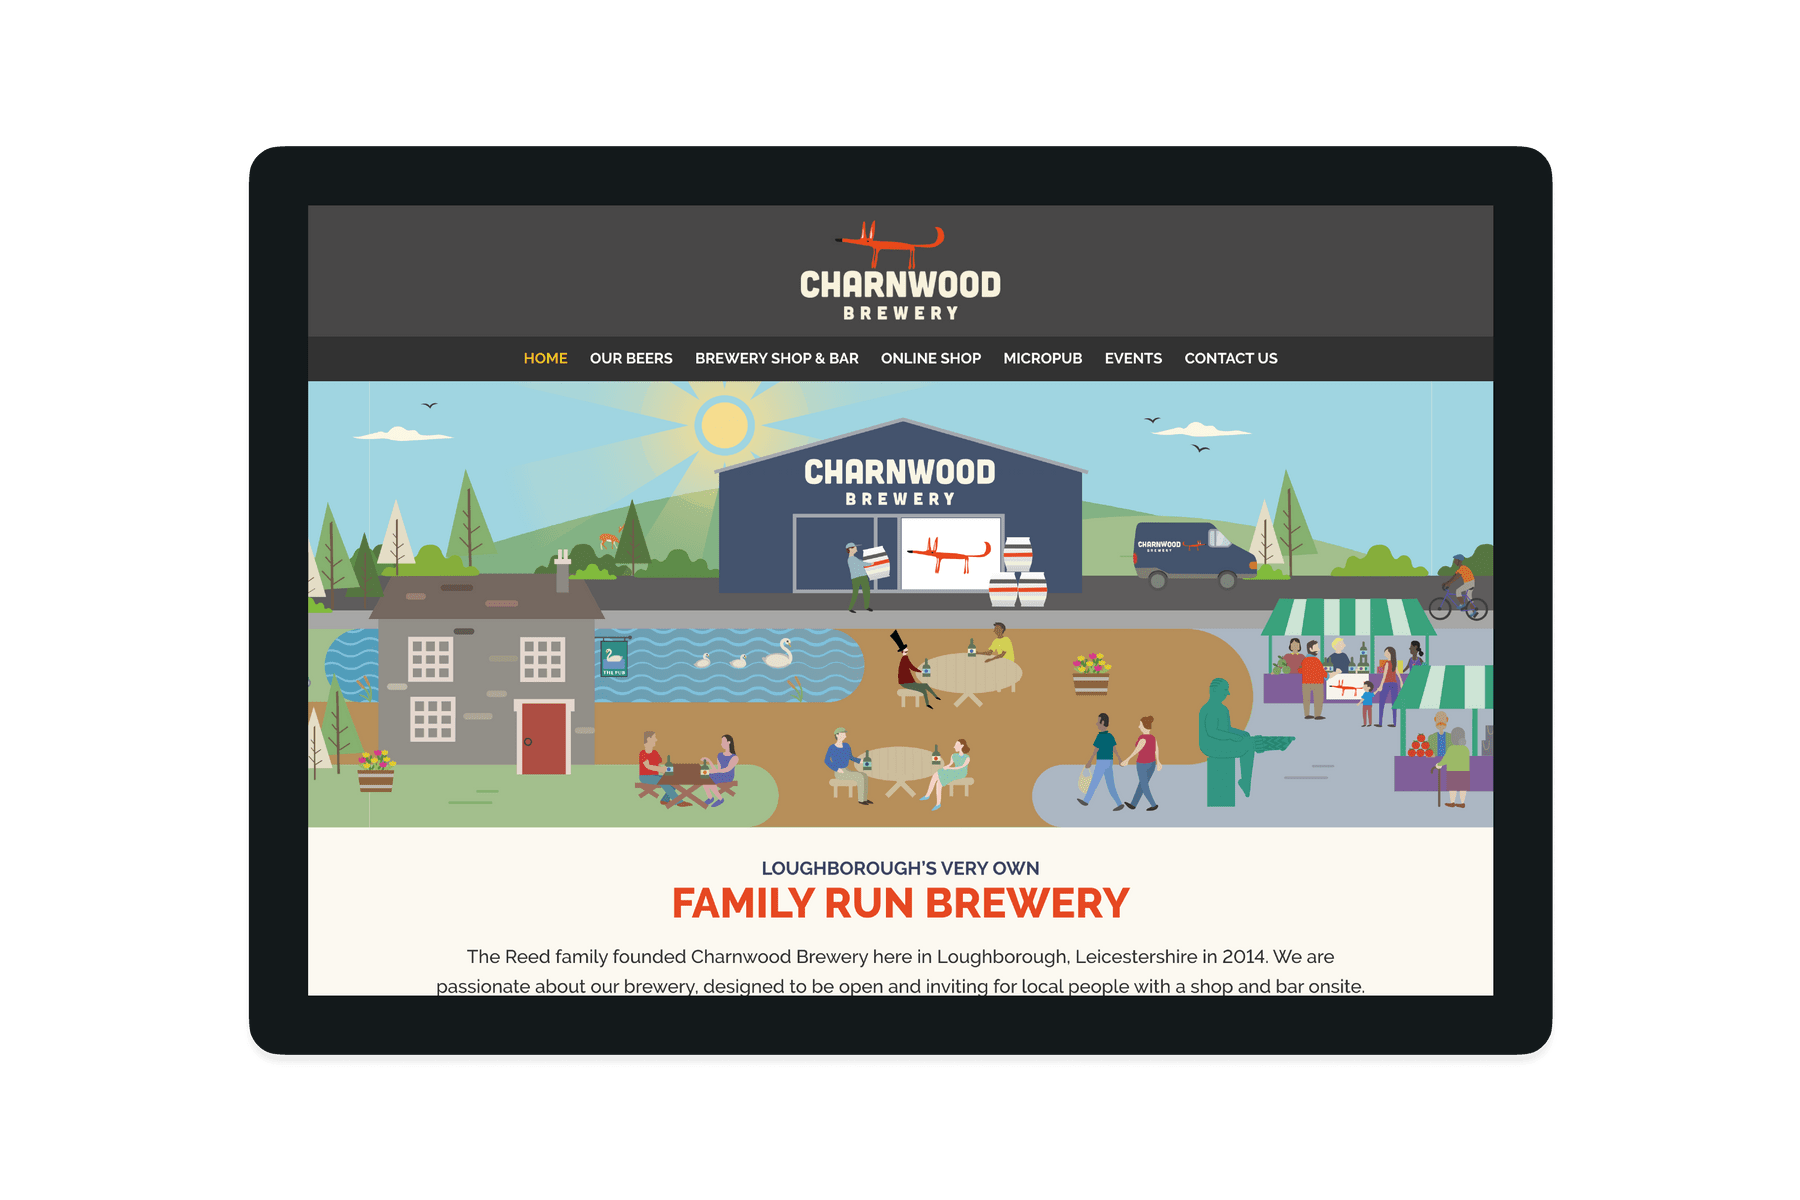 Tablet showing the Charnwood Brewery website home page